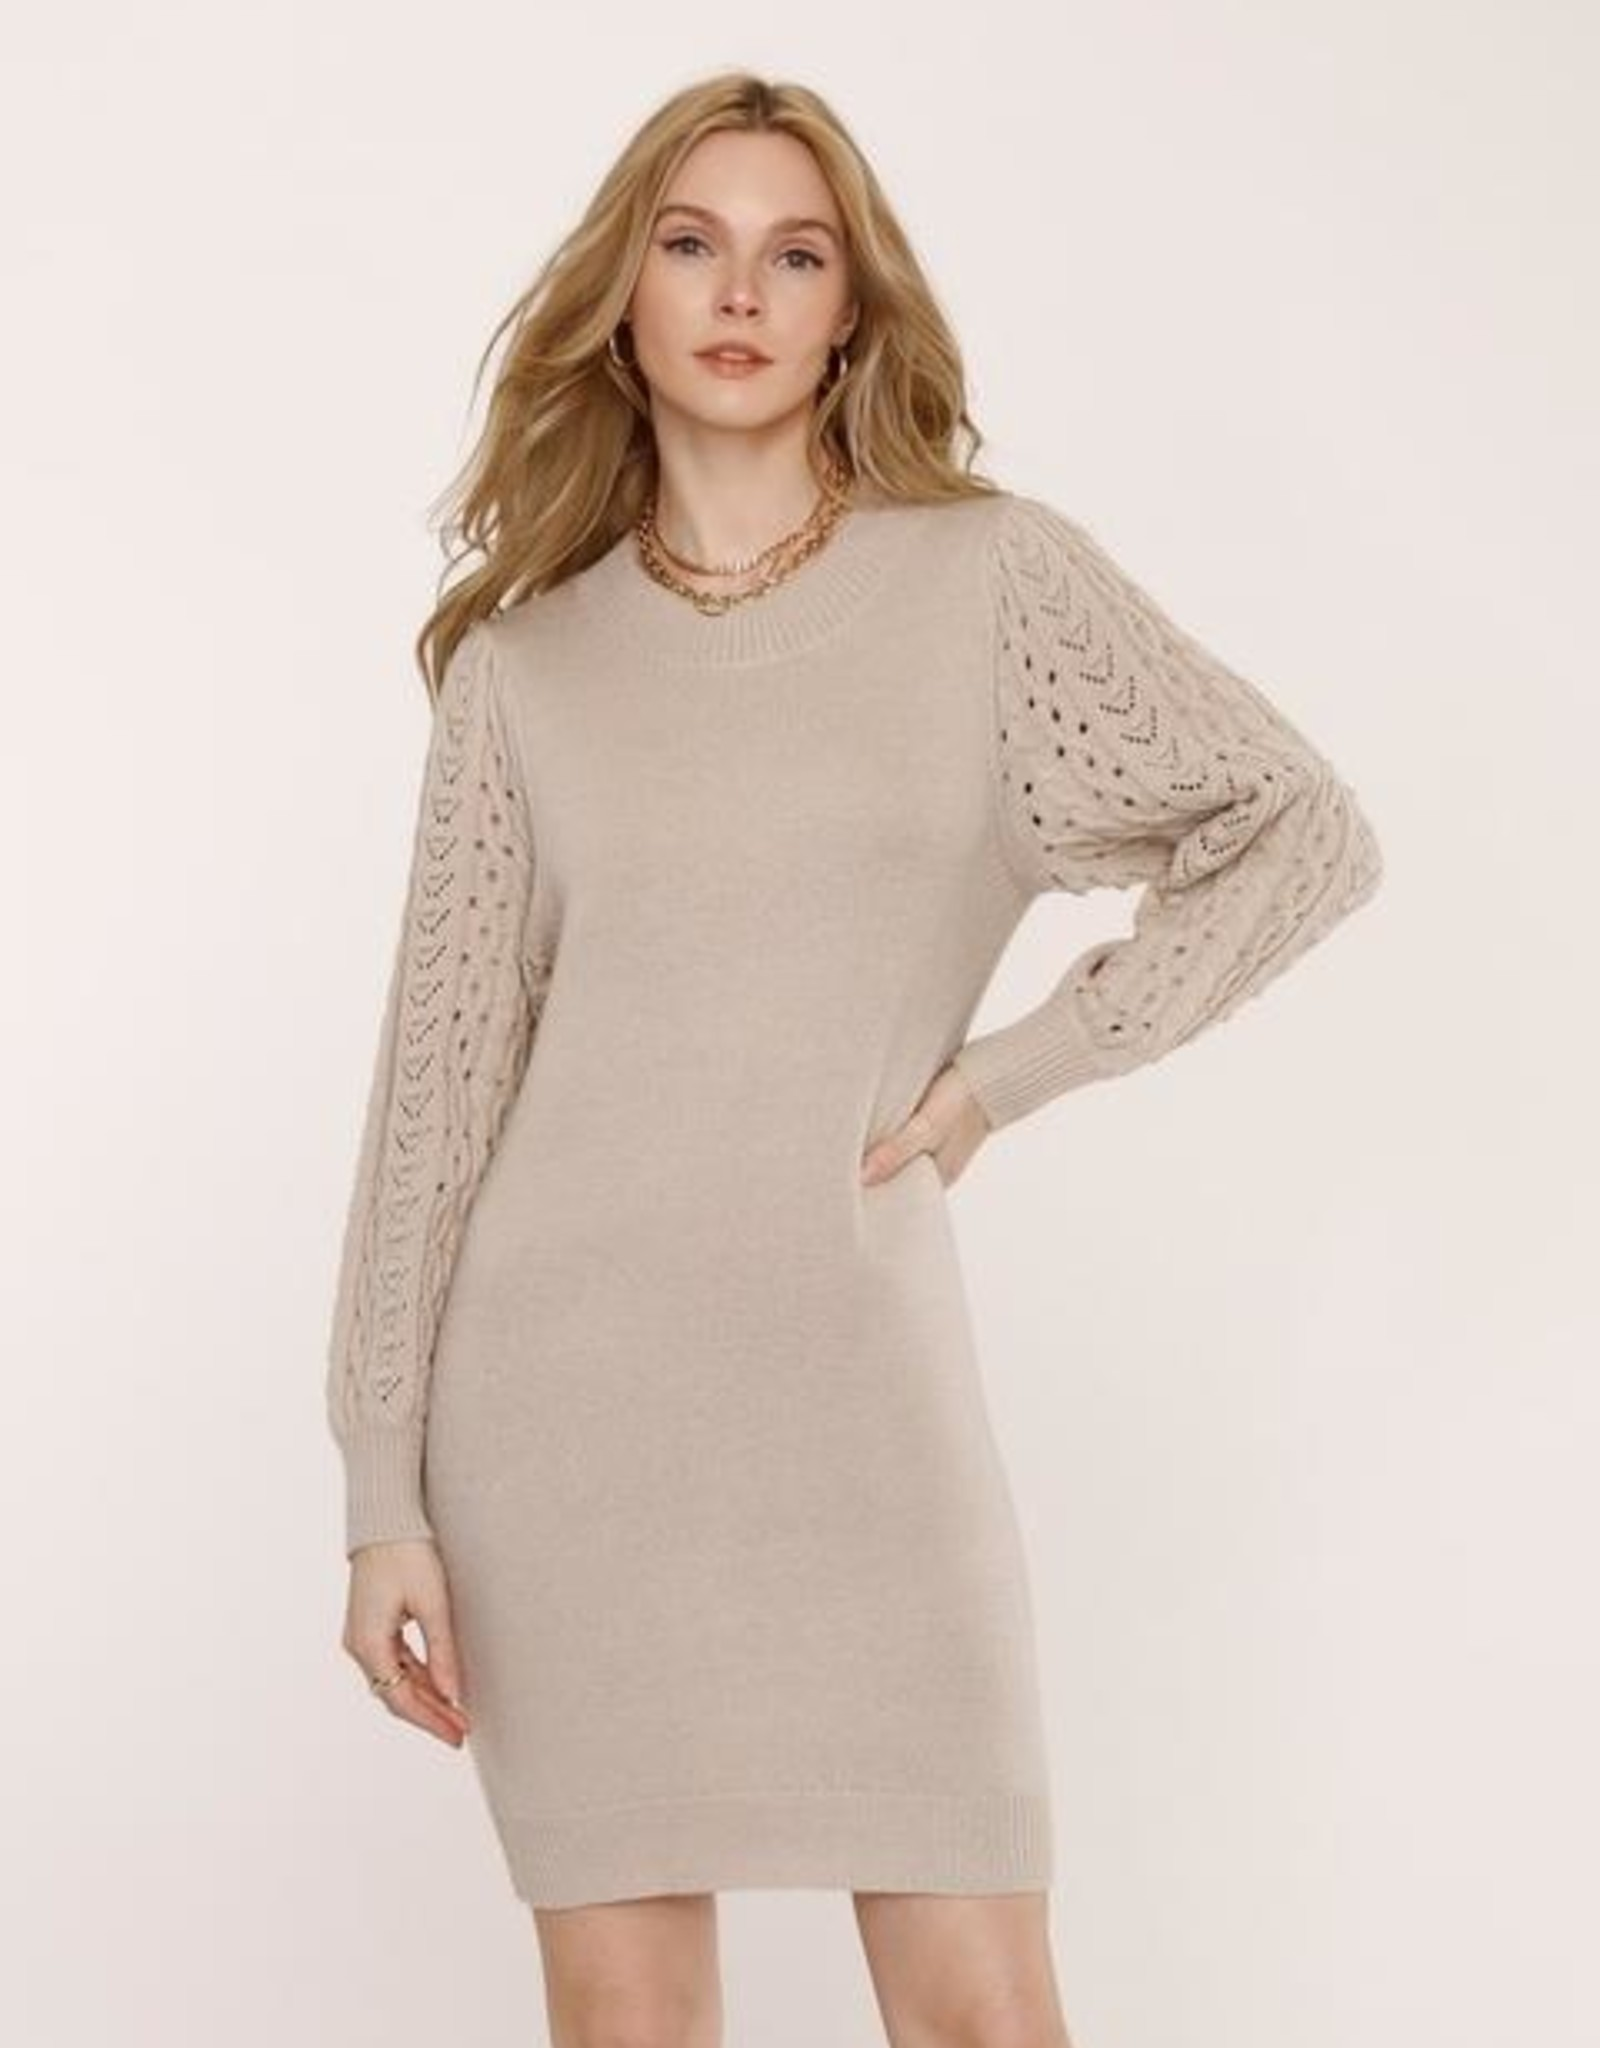 Heartloom Isobel Cable Knit Sleeve Sweater Dress